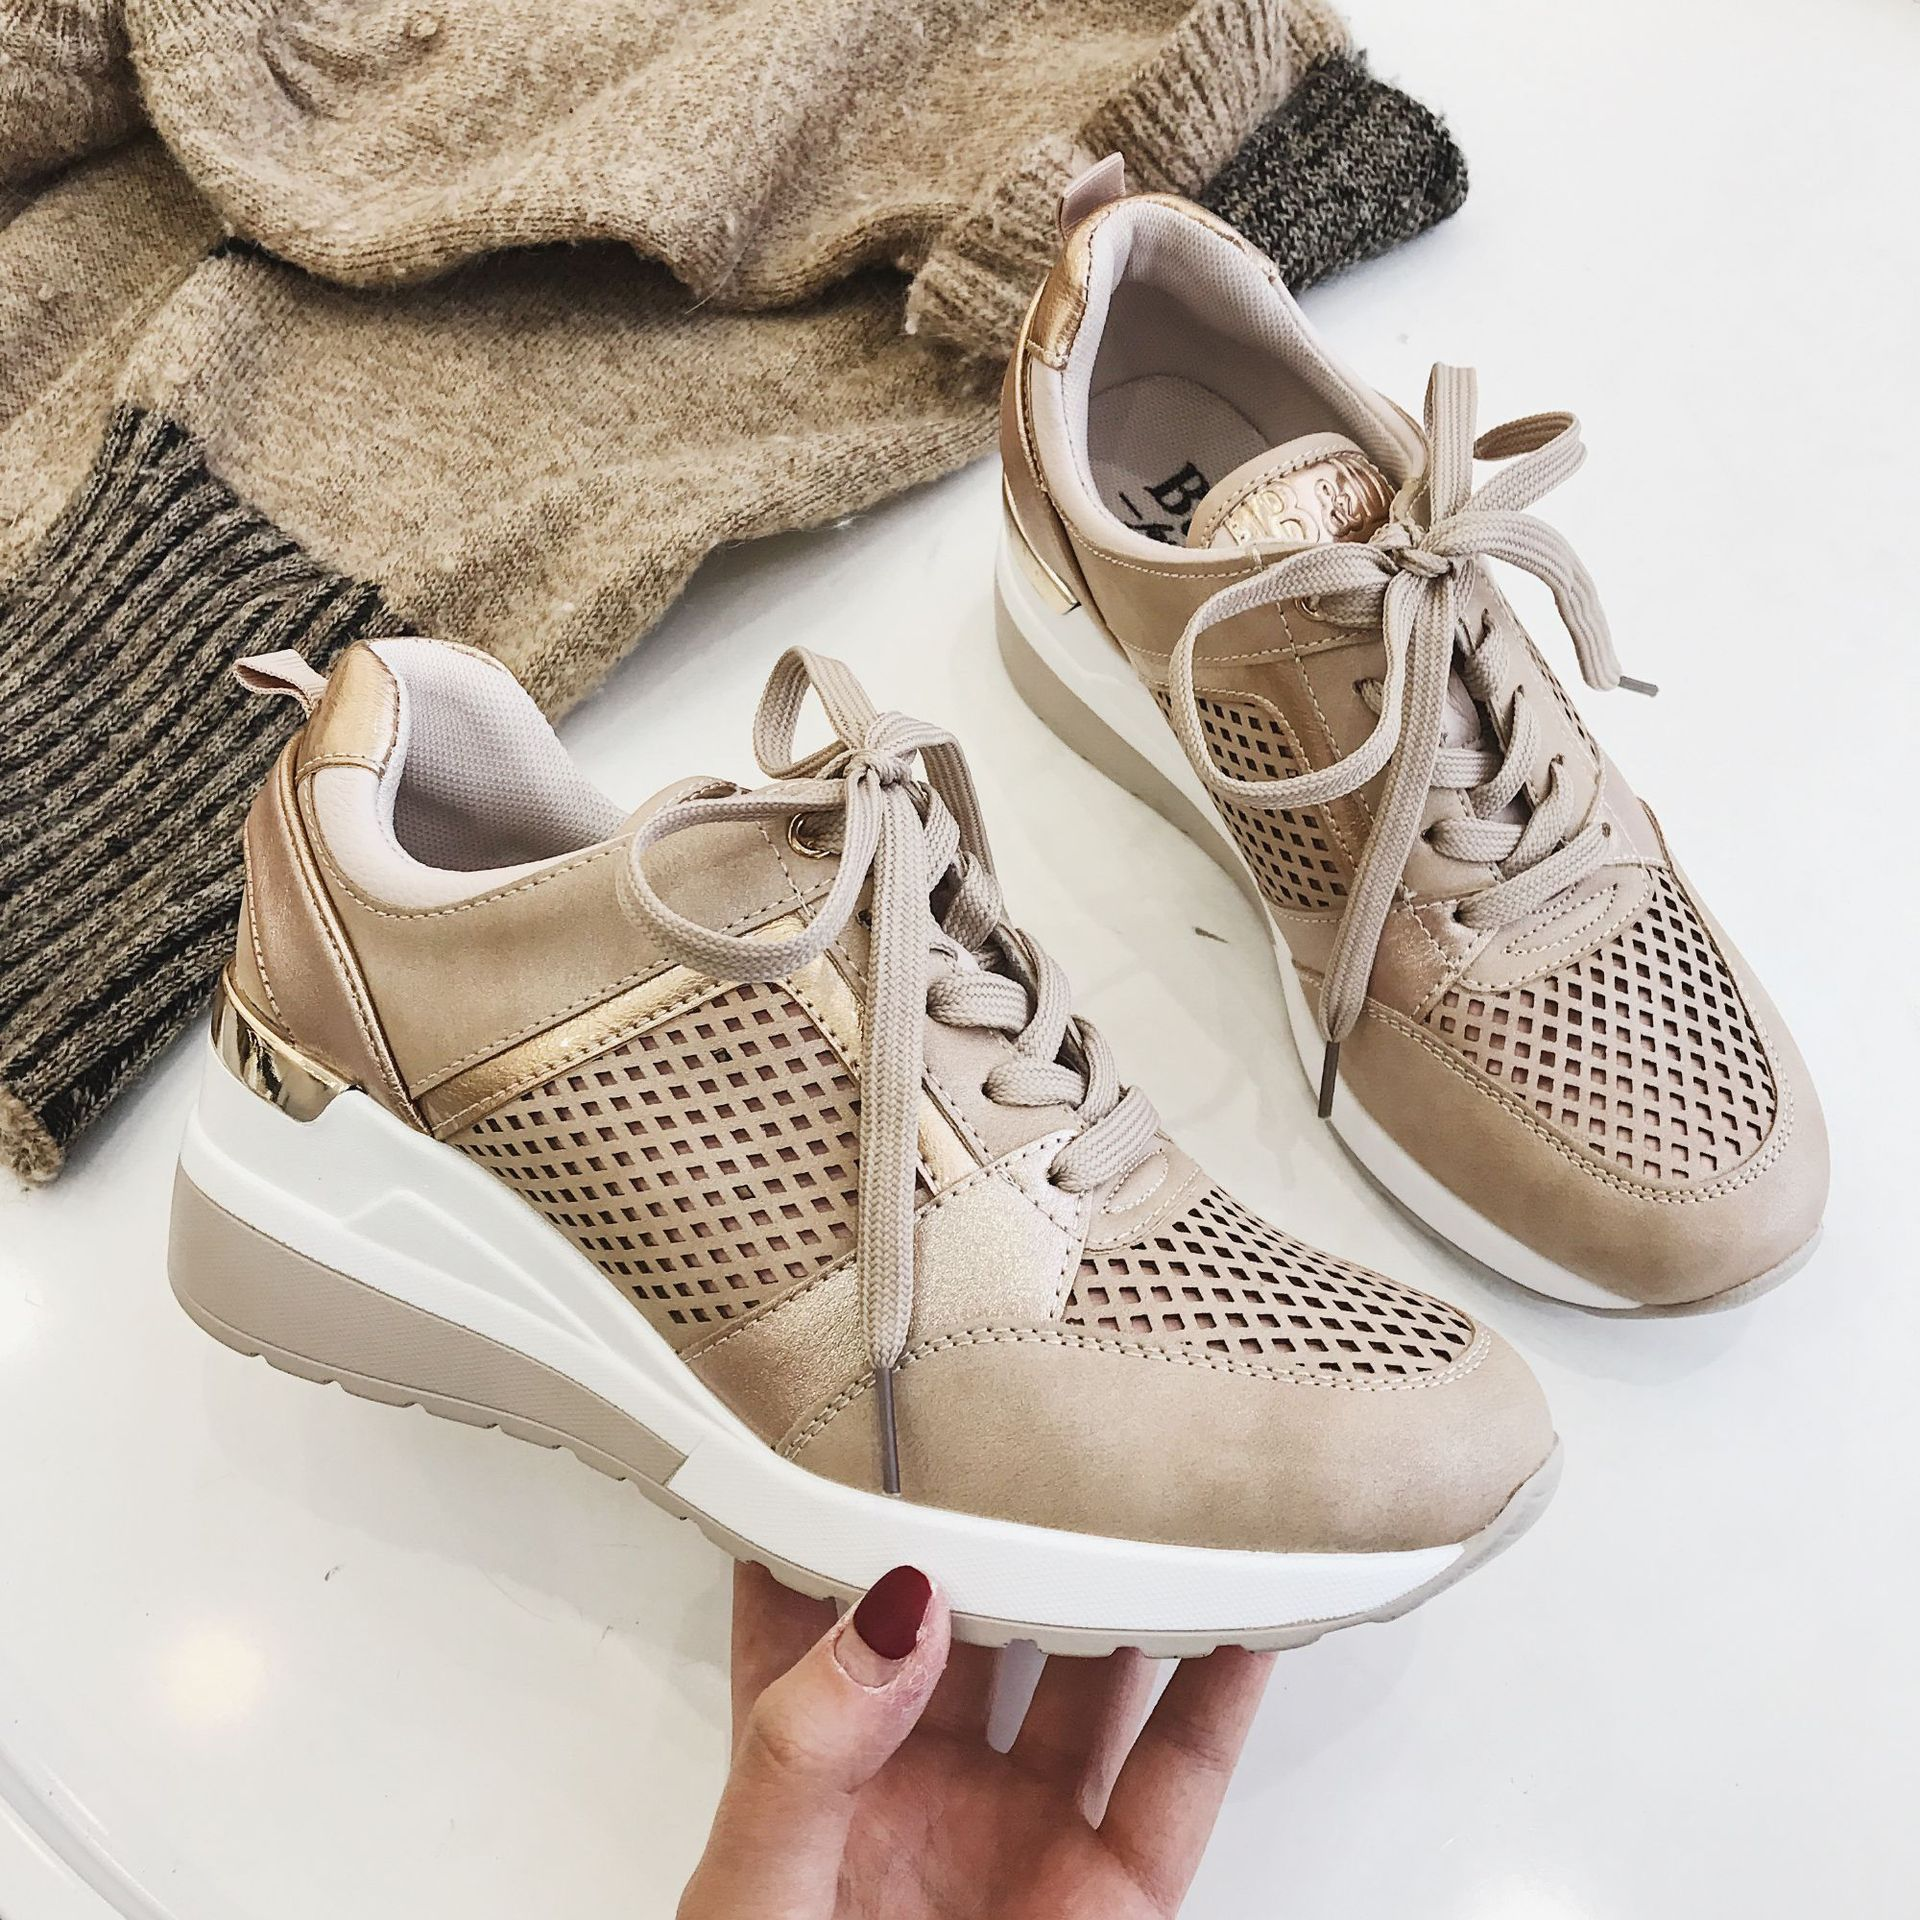 2020 Wedge Sneakers Brand Design Autumn Winter Elegant Women Shoes Platform Fashion Woman New Casual Style